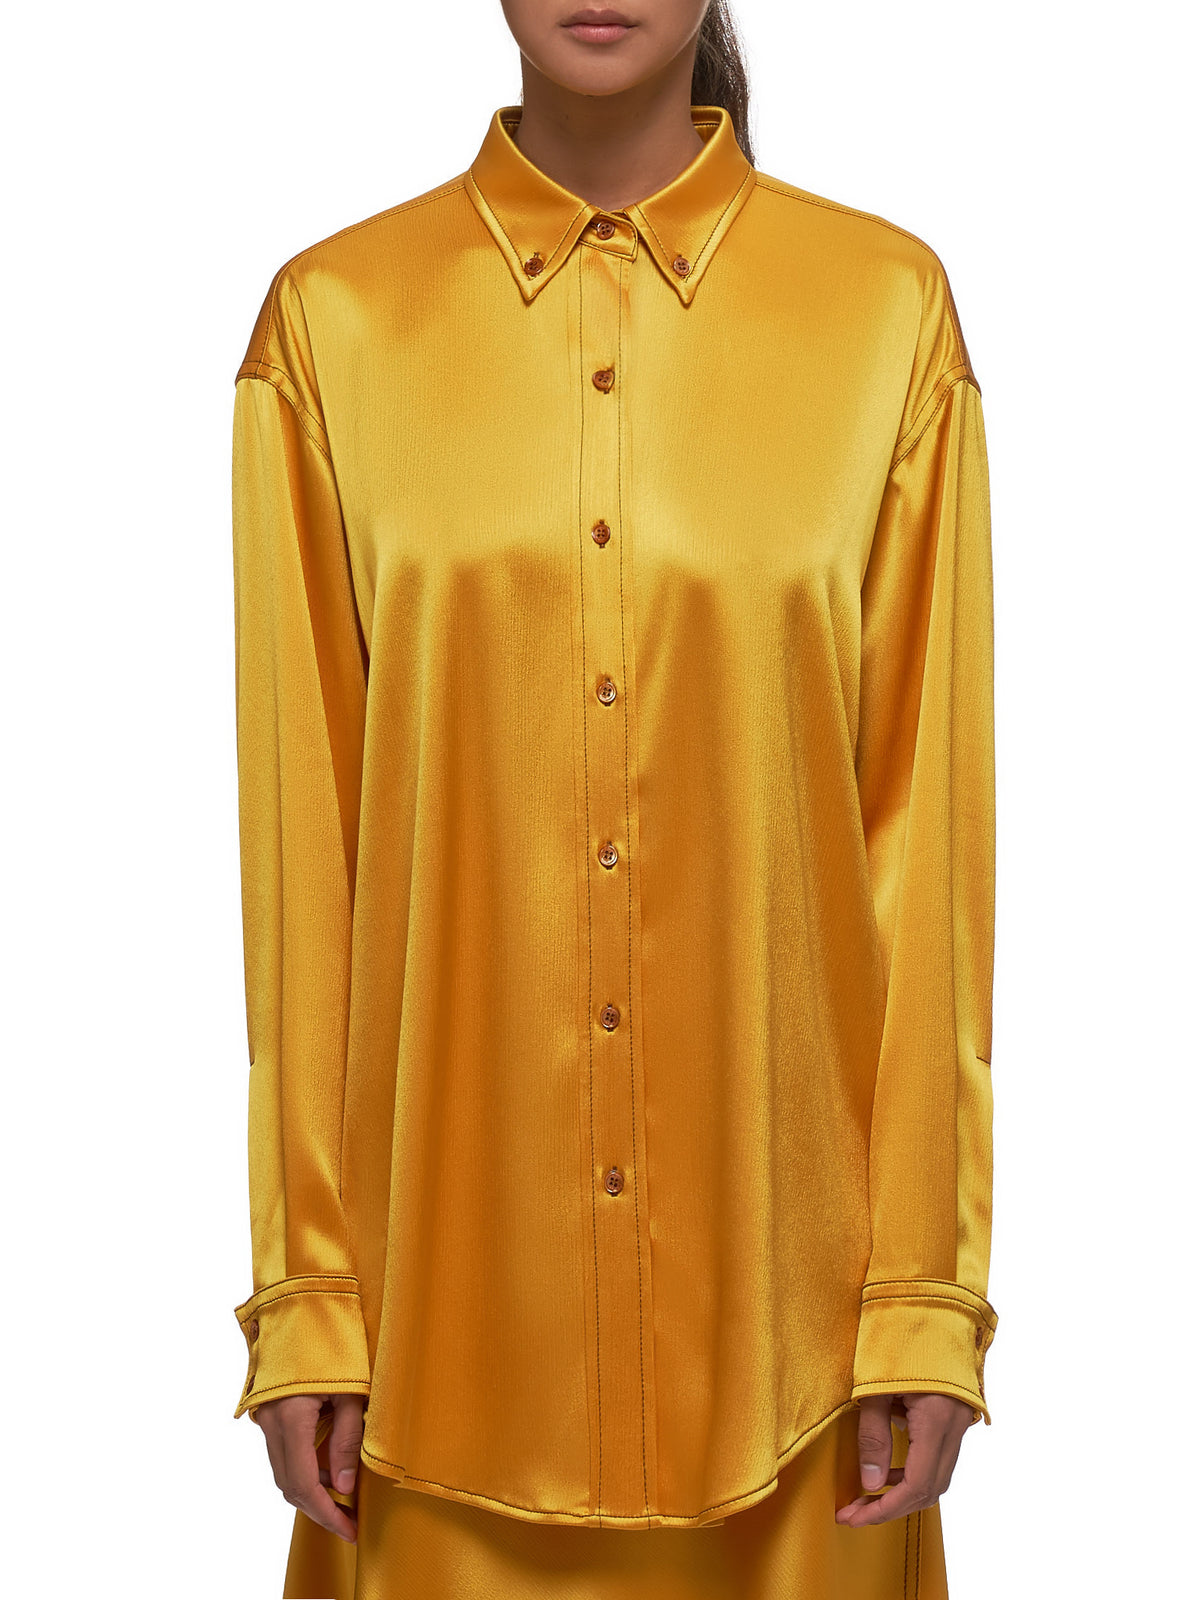 Kiki Crinkled Oversized Satin Shirt (15KS3097-YELLOW)